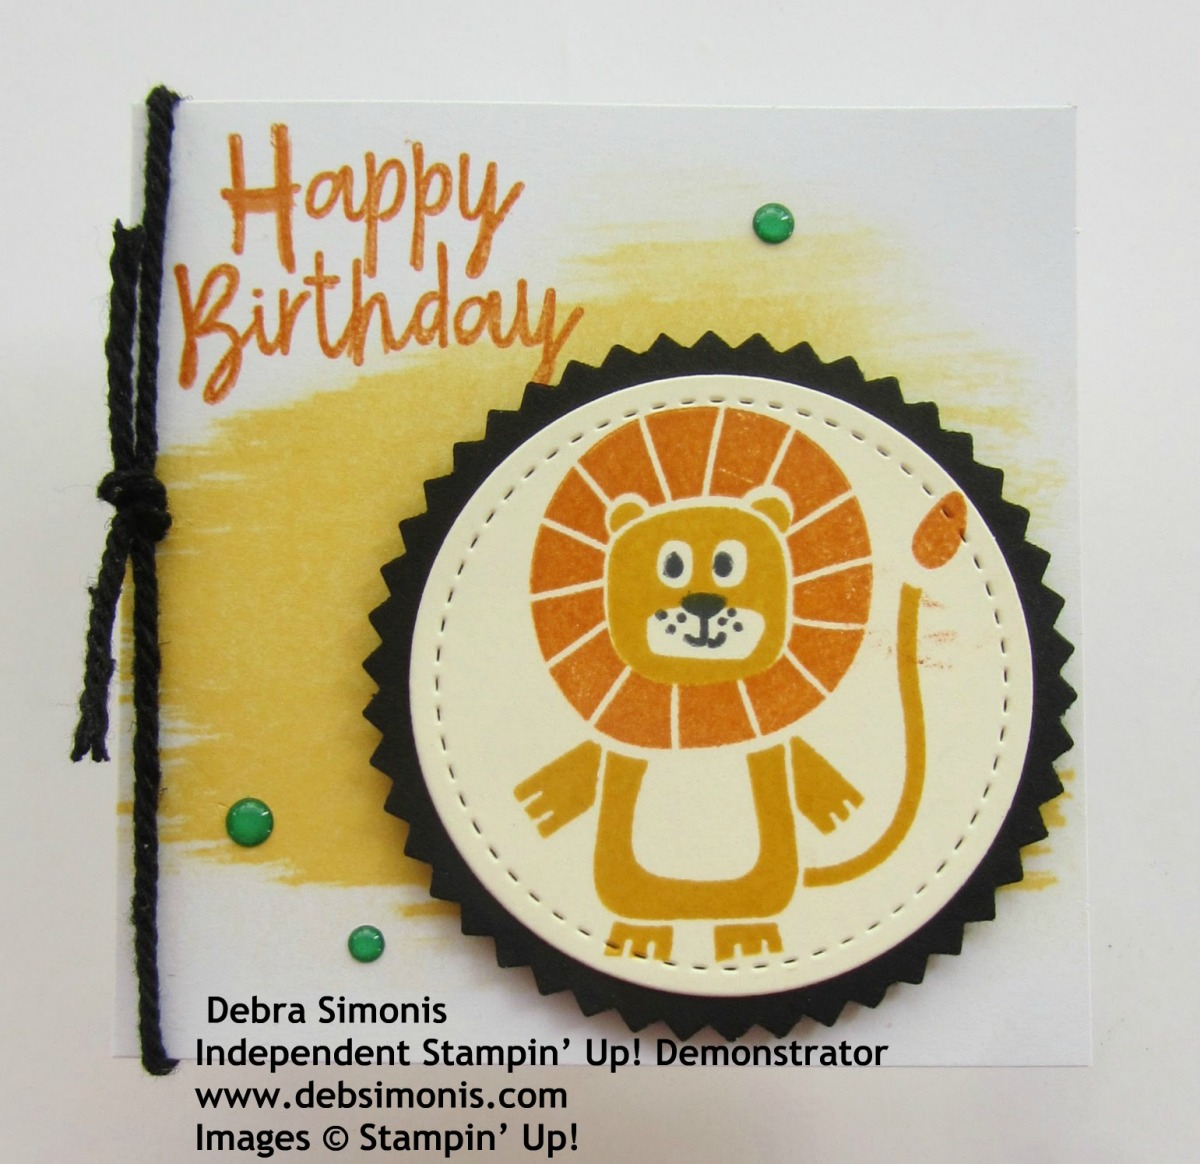 Stampin-Up-Birthday-Bonanza-3-x-3-Lion-Birthday-Gift-Enclosure-Card-Starburst-Punch-Stitched-Shapes-Dies-Debra-Simonis-Stampinup